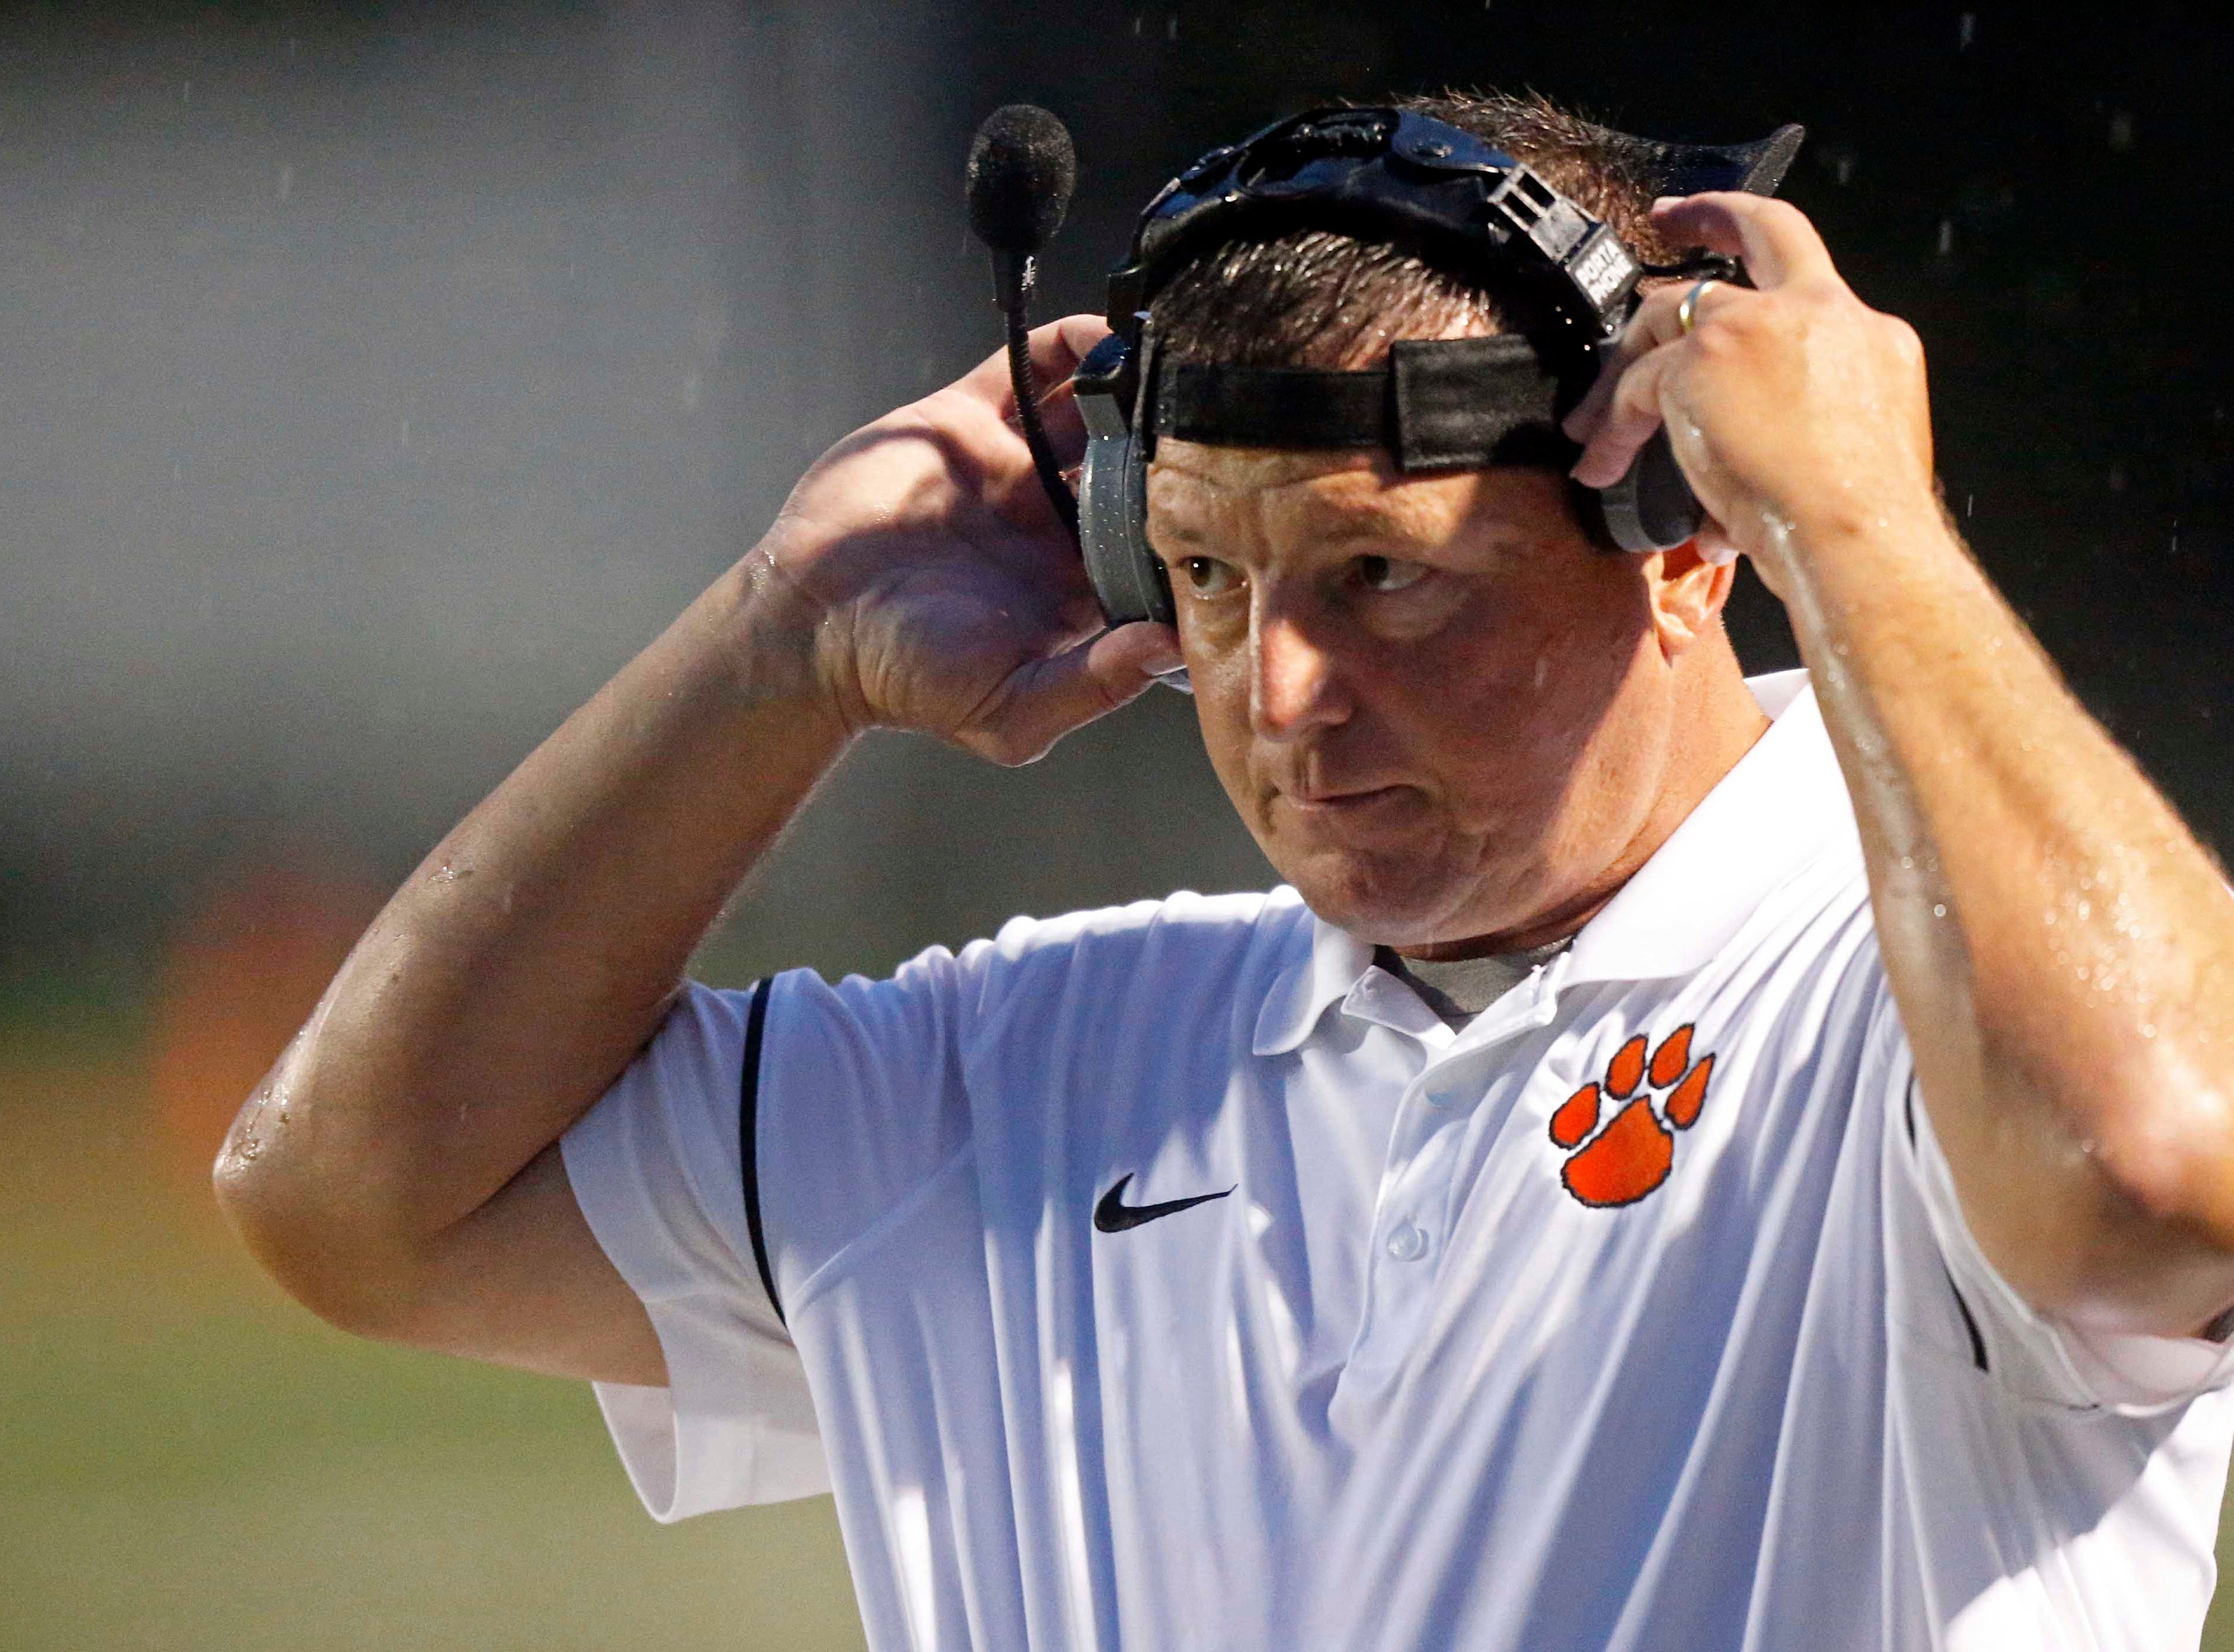 Powell head coach Matt Lowe is seen during their game against Campbell County Thursday, Sept. 27, 2018, in Knoxville, Tenn.